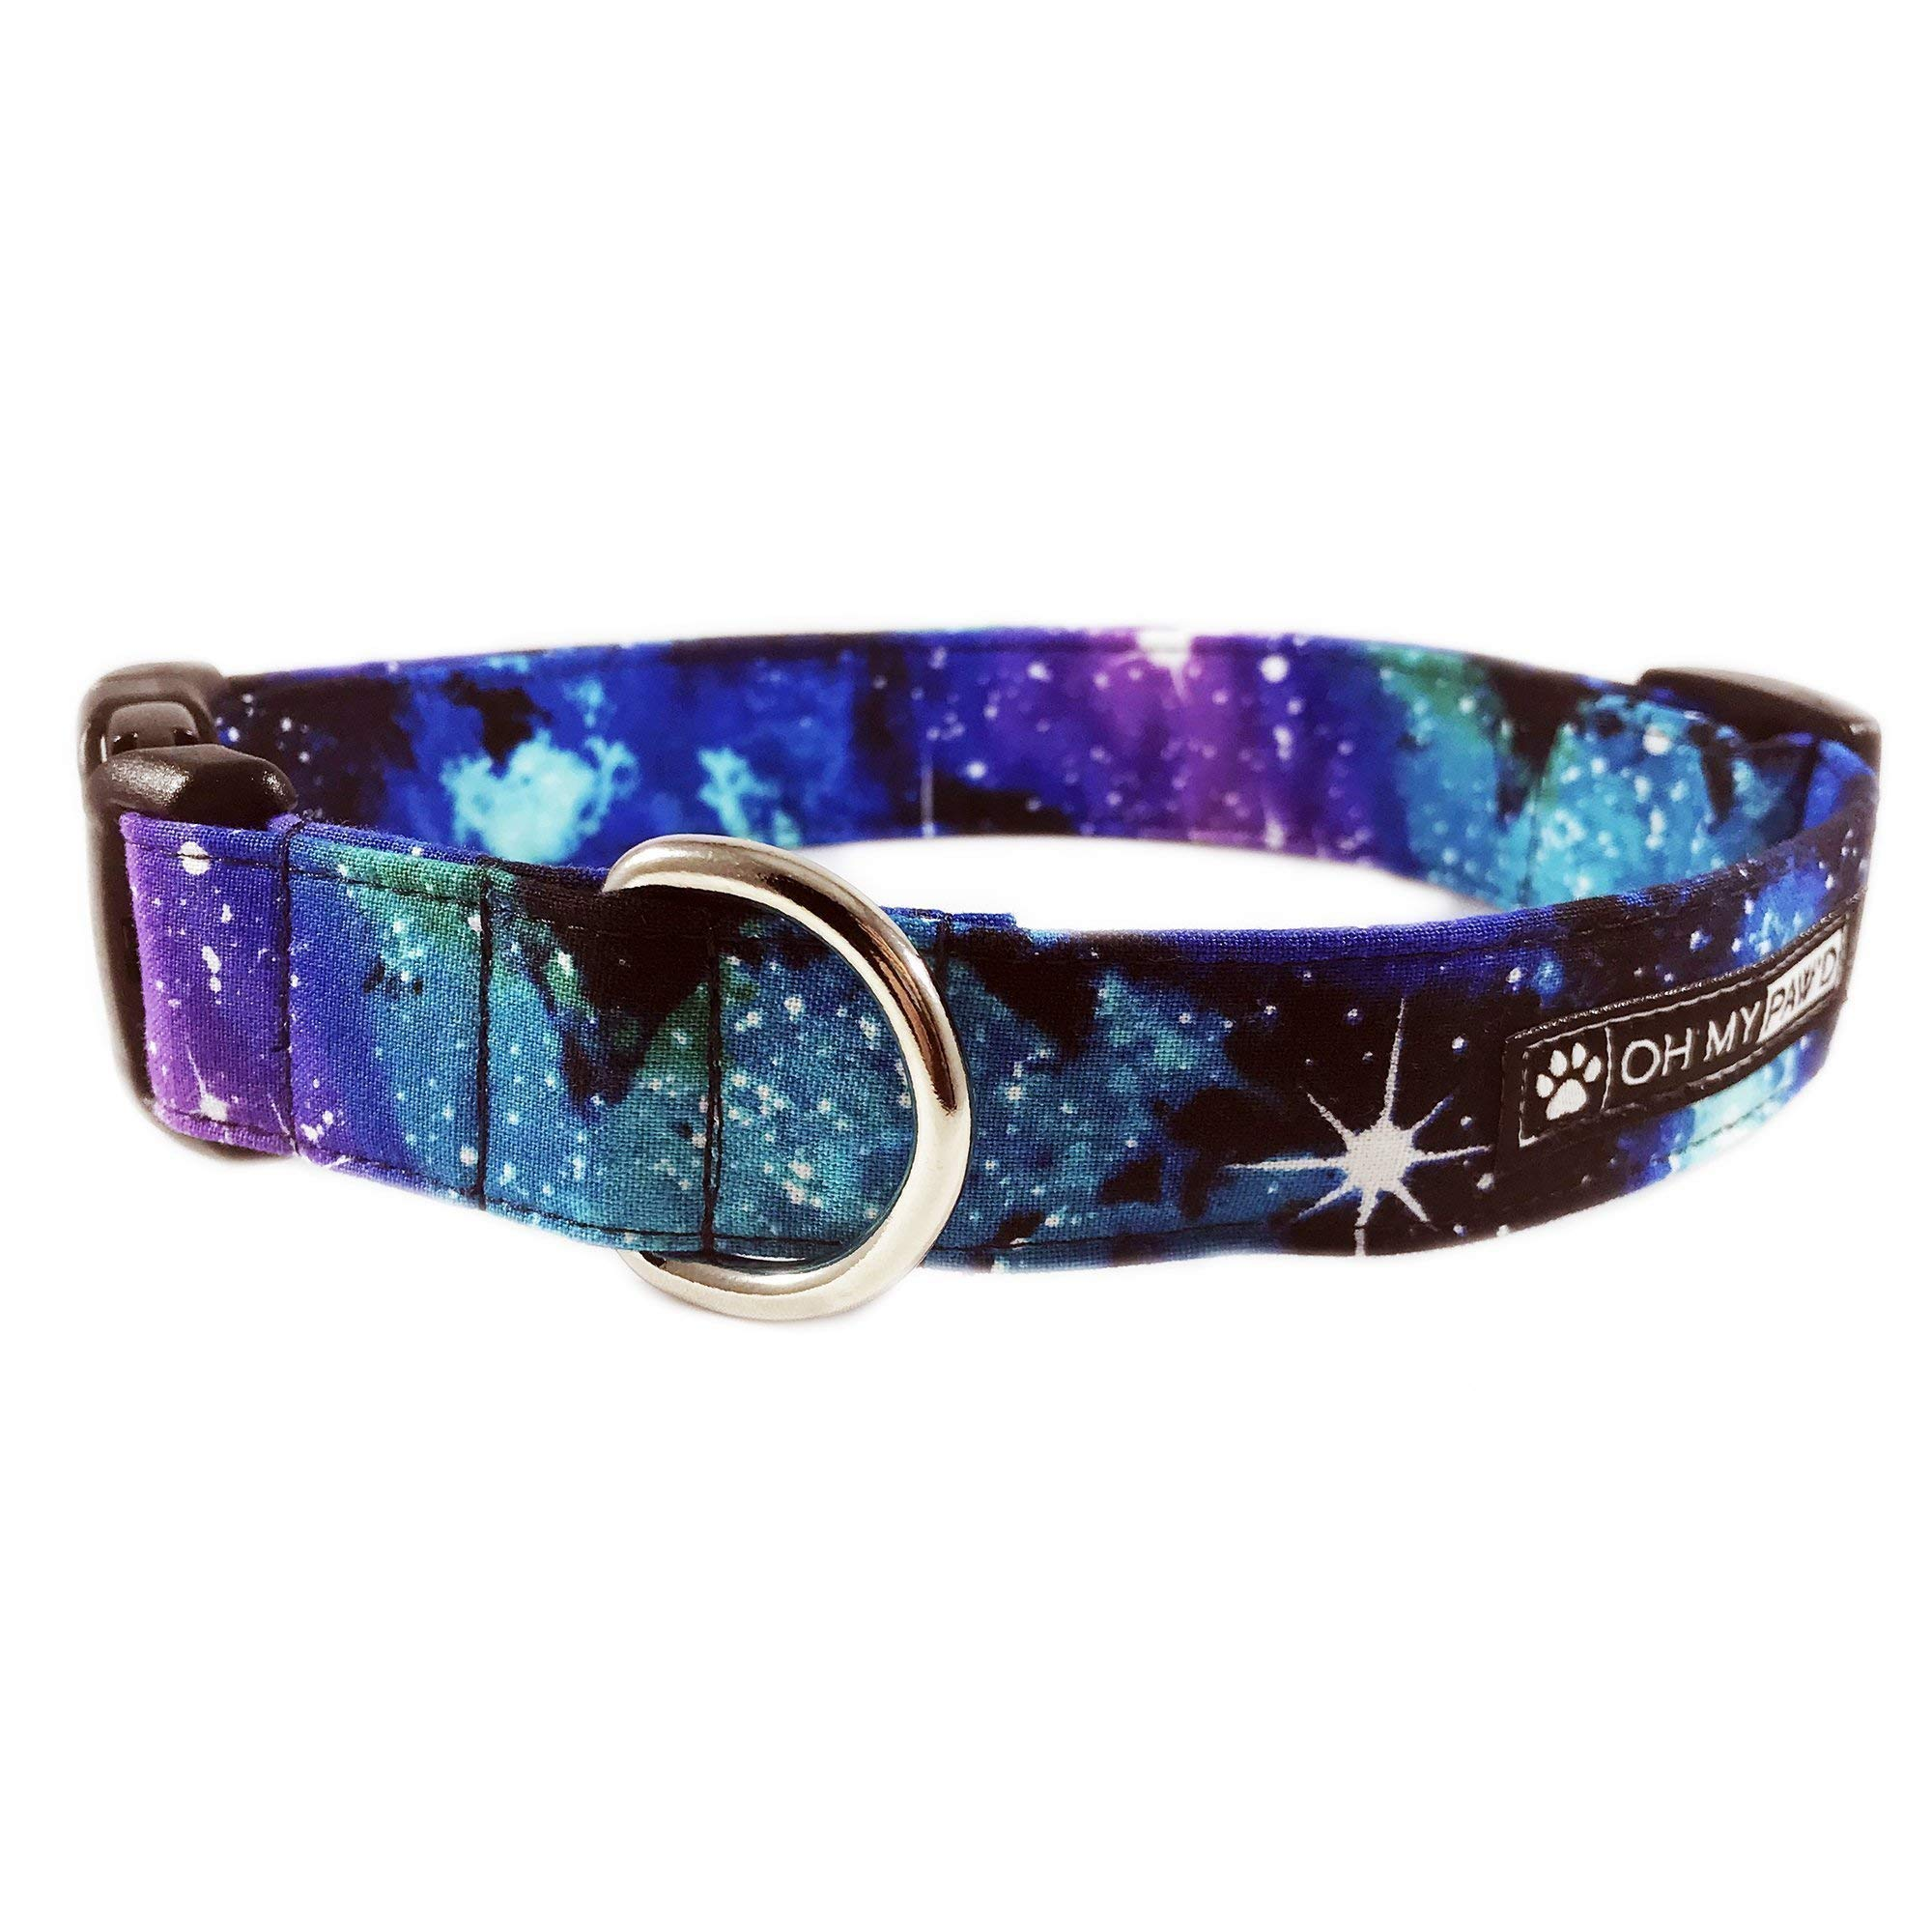 Hand Made Dog Collar - Galaxy Print Collar for Pets Size Medium 3/4'' Wide and 13-17'' Long by Oh My Paw'd